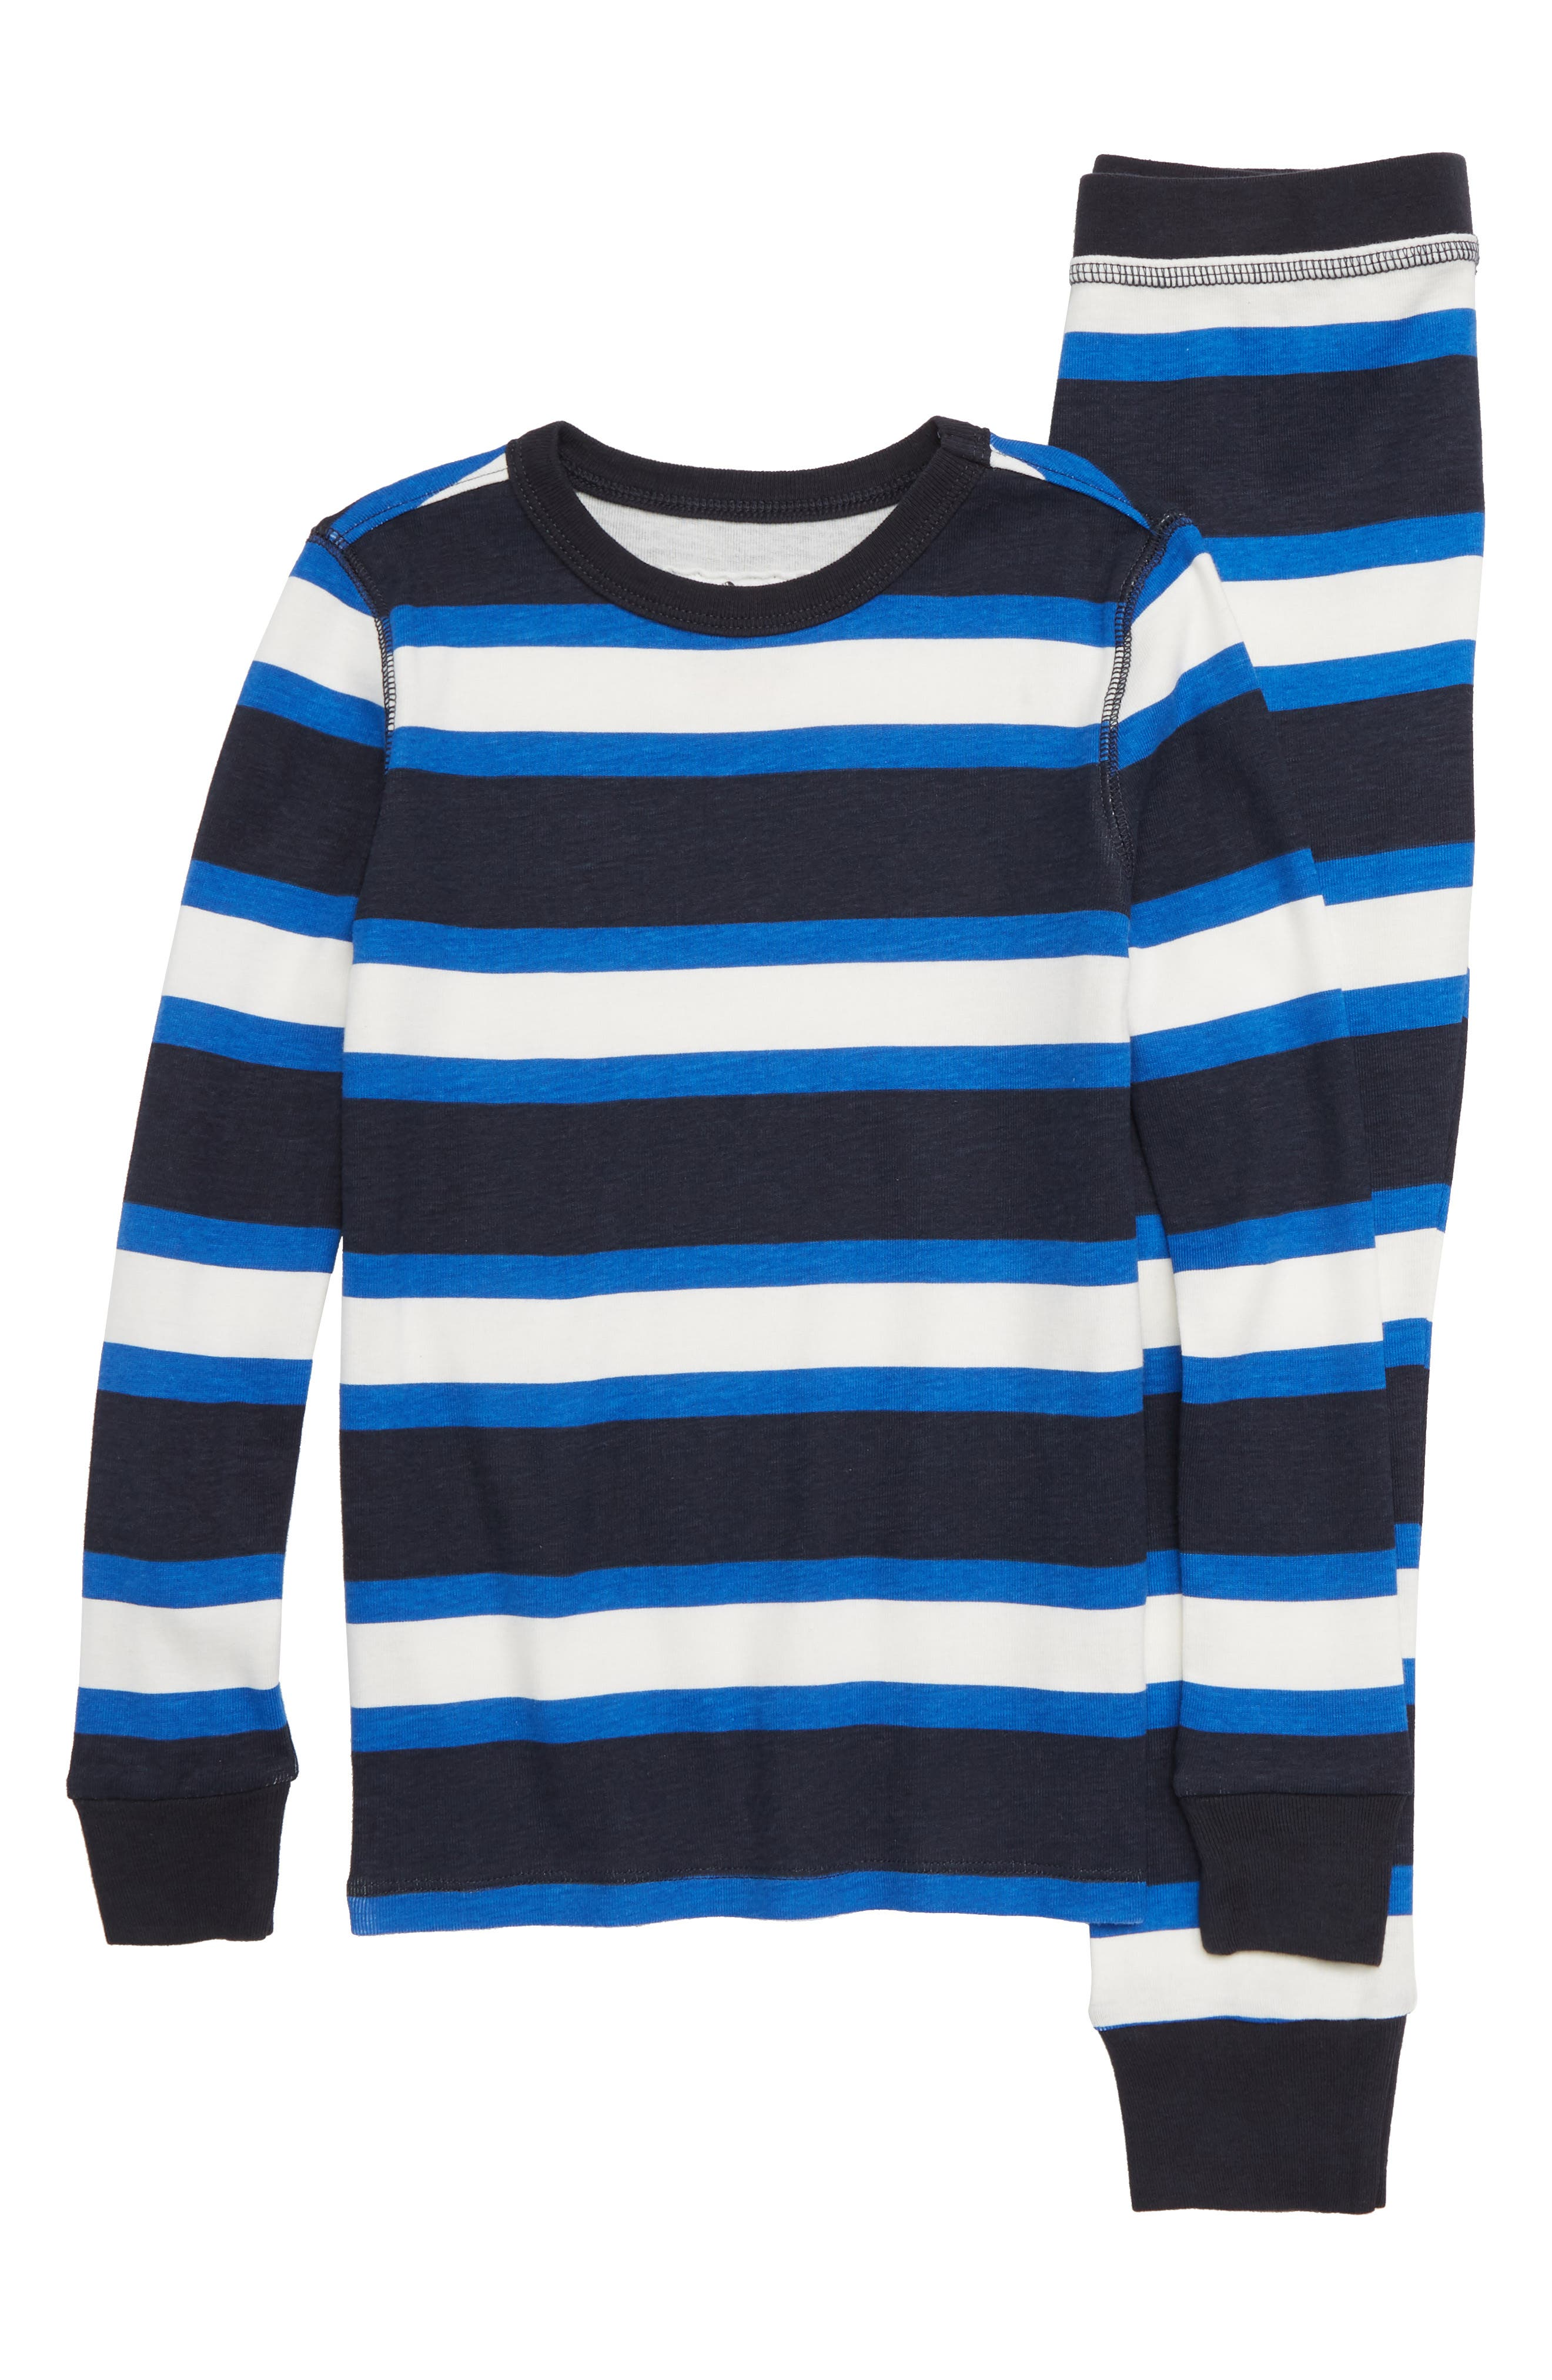 Stripe Fitted Two-Piece Pajamas,                             Main thumbnail 1, color,                             400